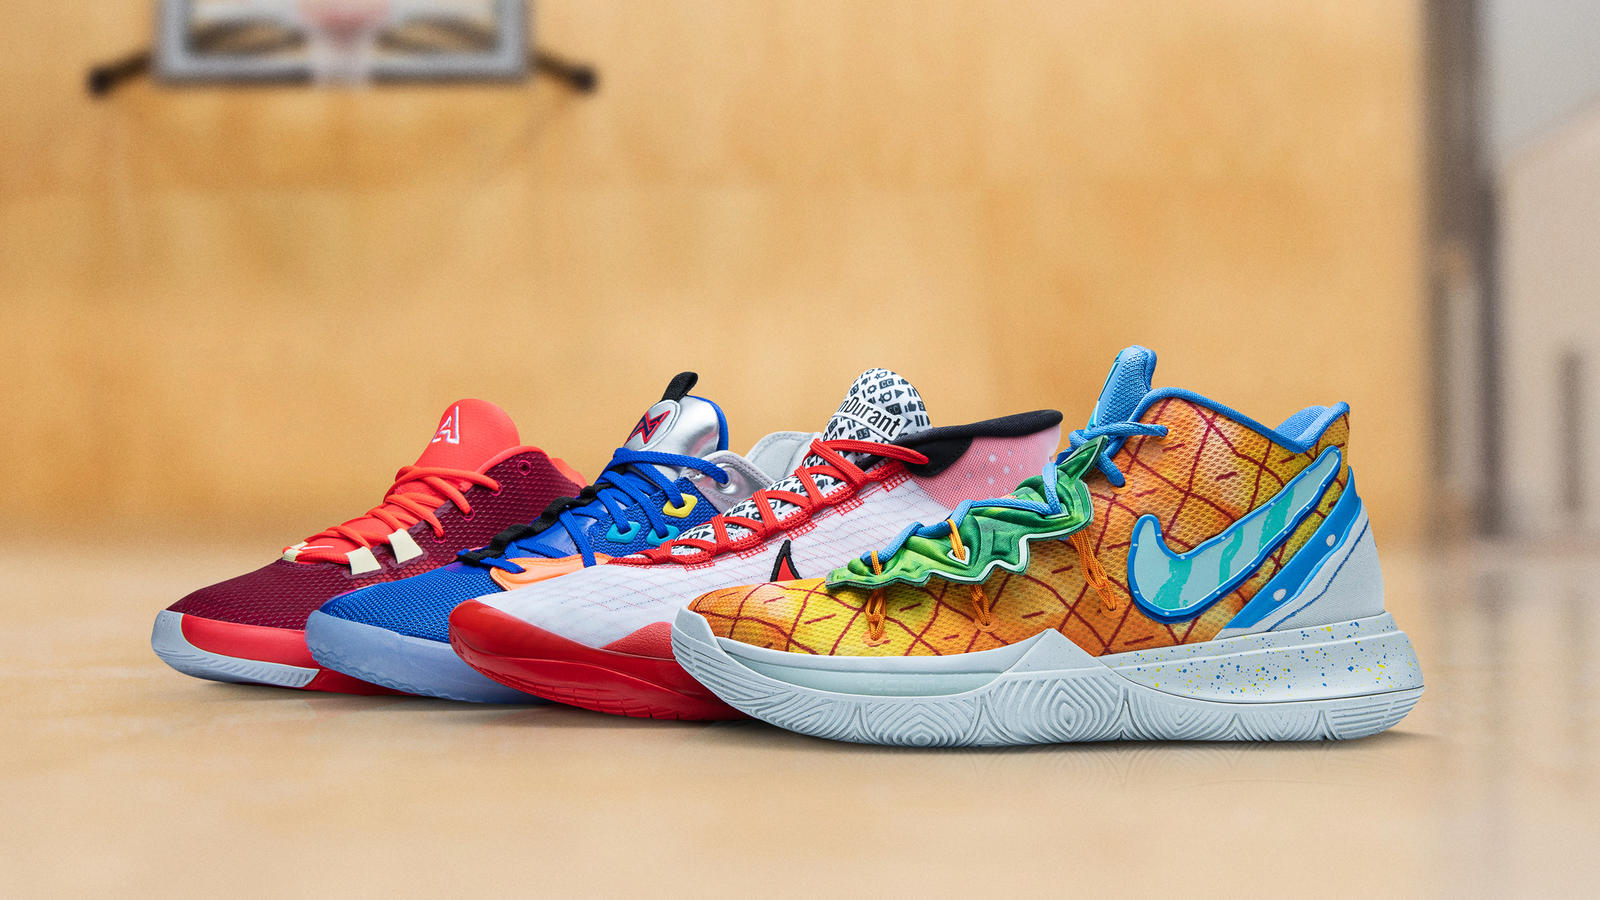 Nike Basketball Reveals Opening-Week Sneakers For Kyrie, Giannis & More